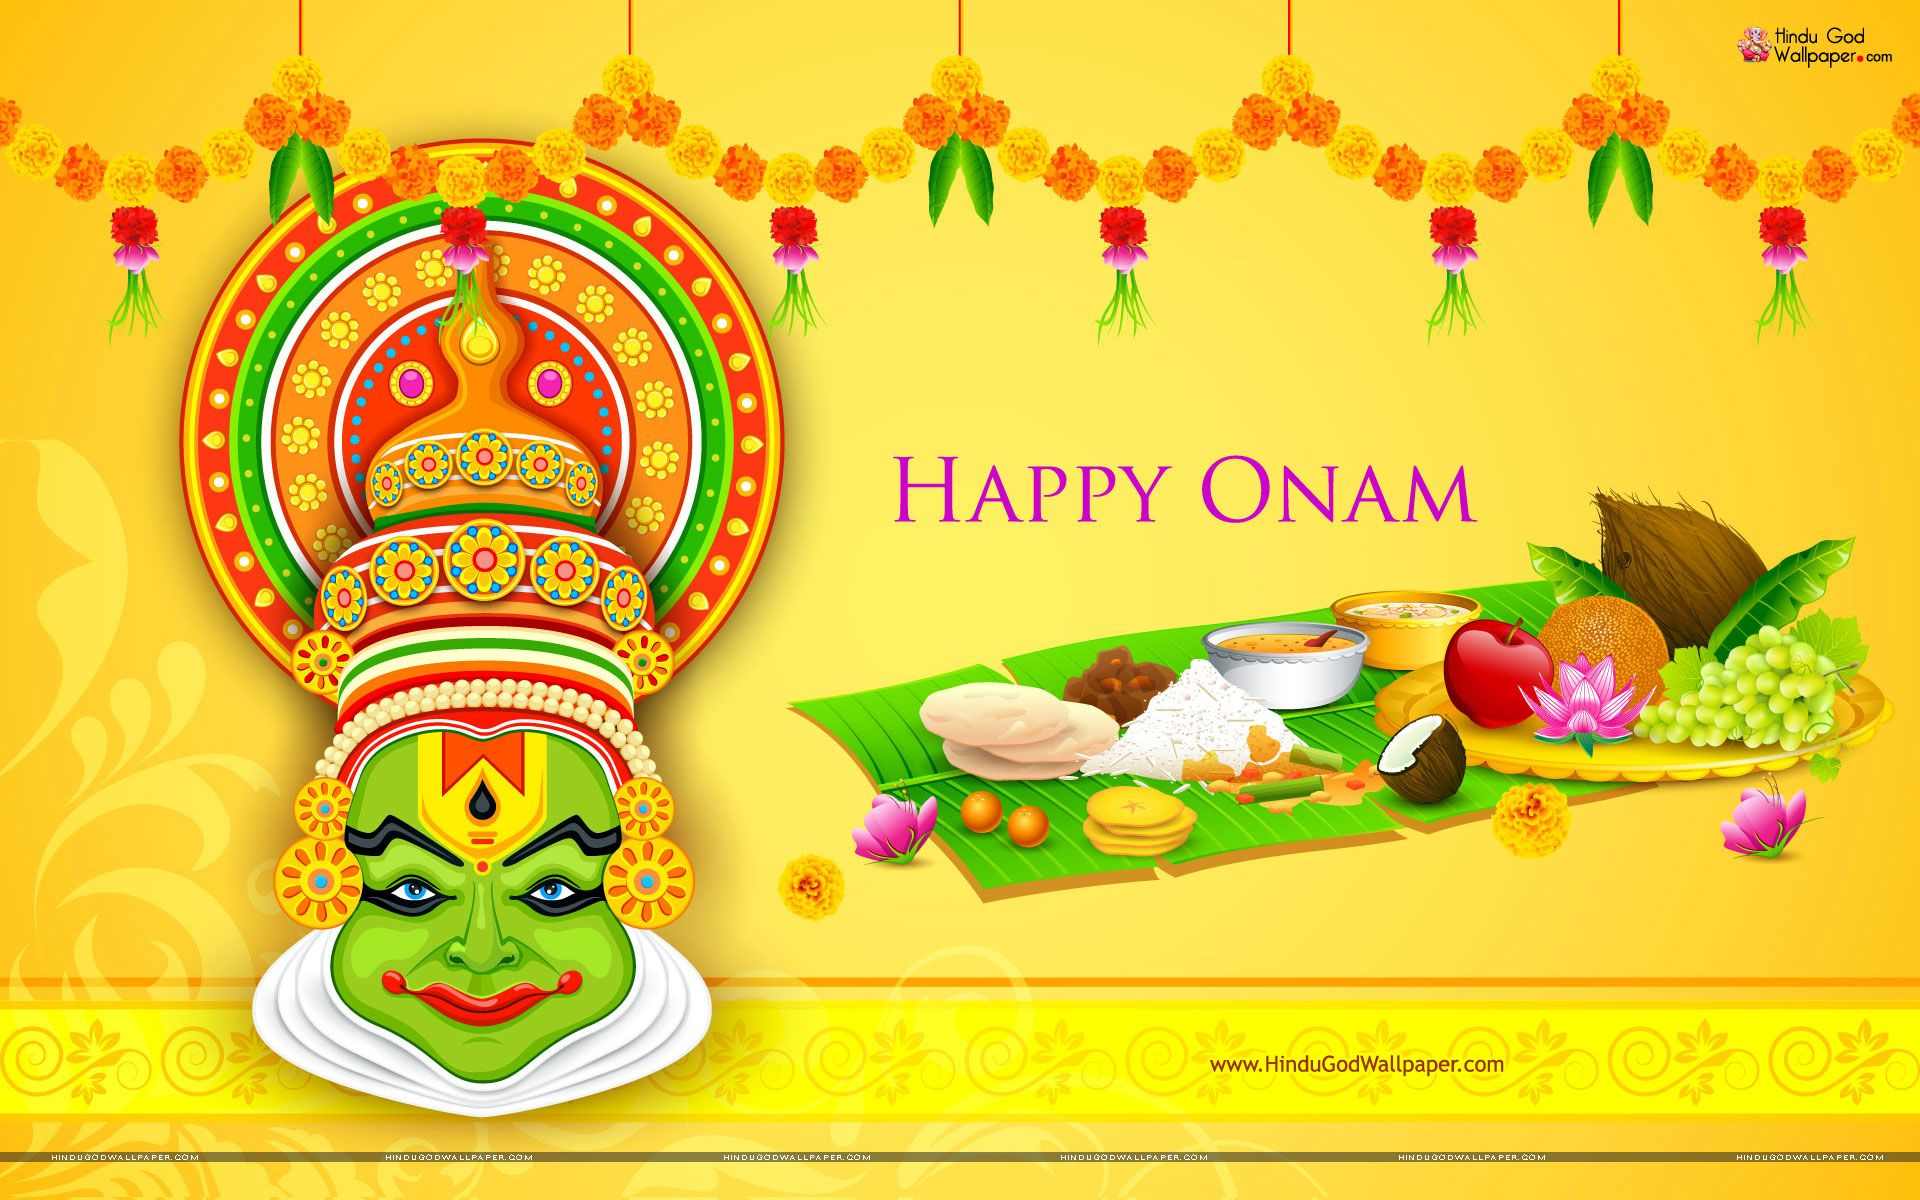 Kerala onam festival wallpapers free download onam wallpapers kerala onam festival wallpapers free download kristyandbryce Image collections